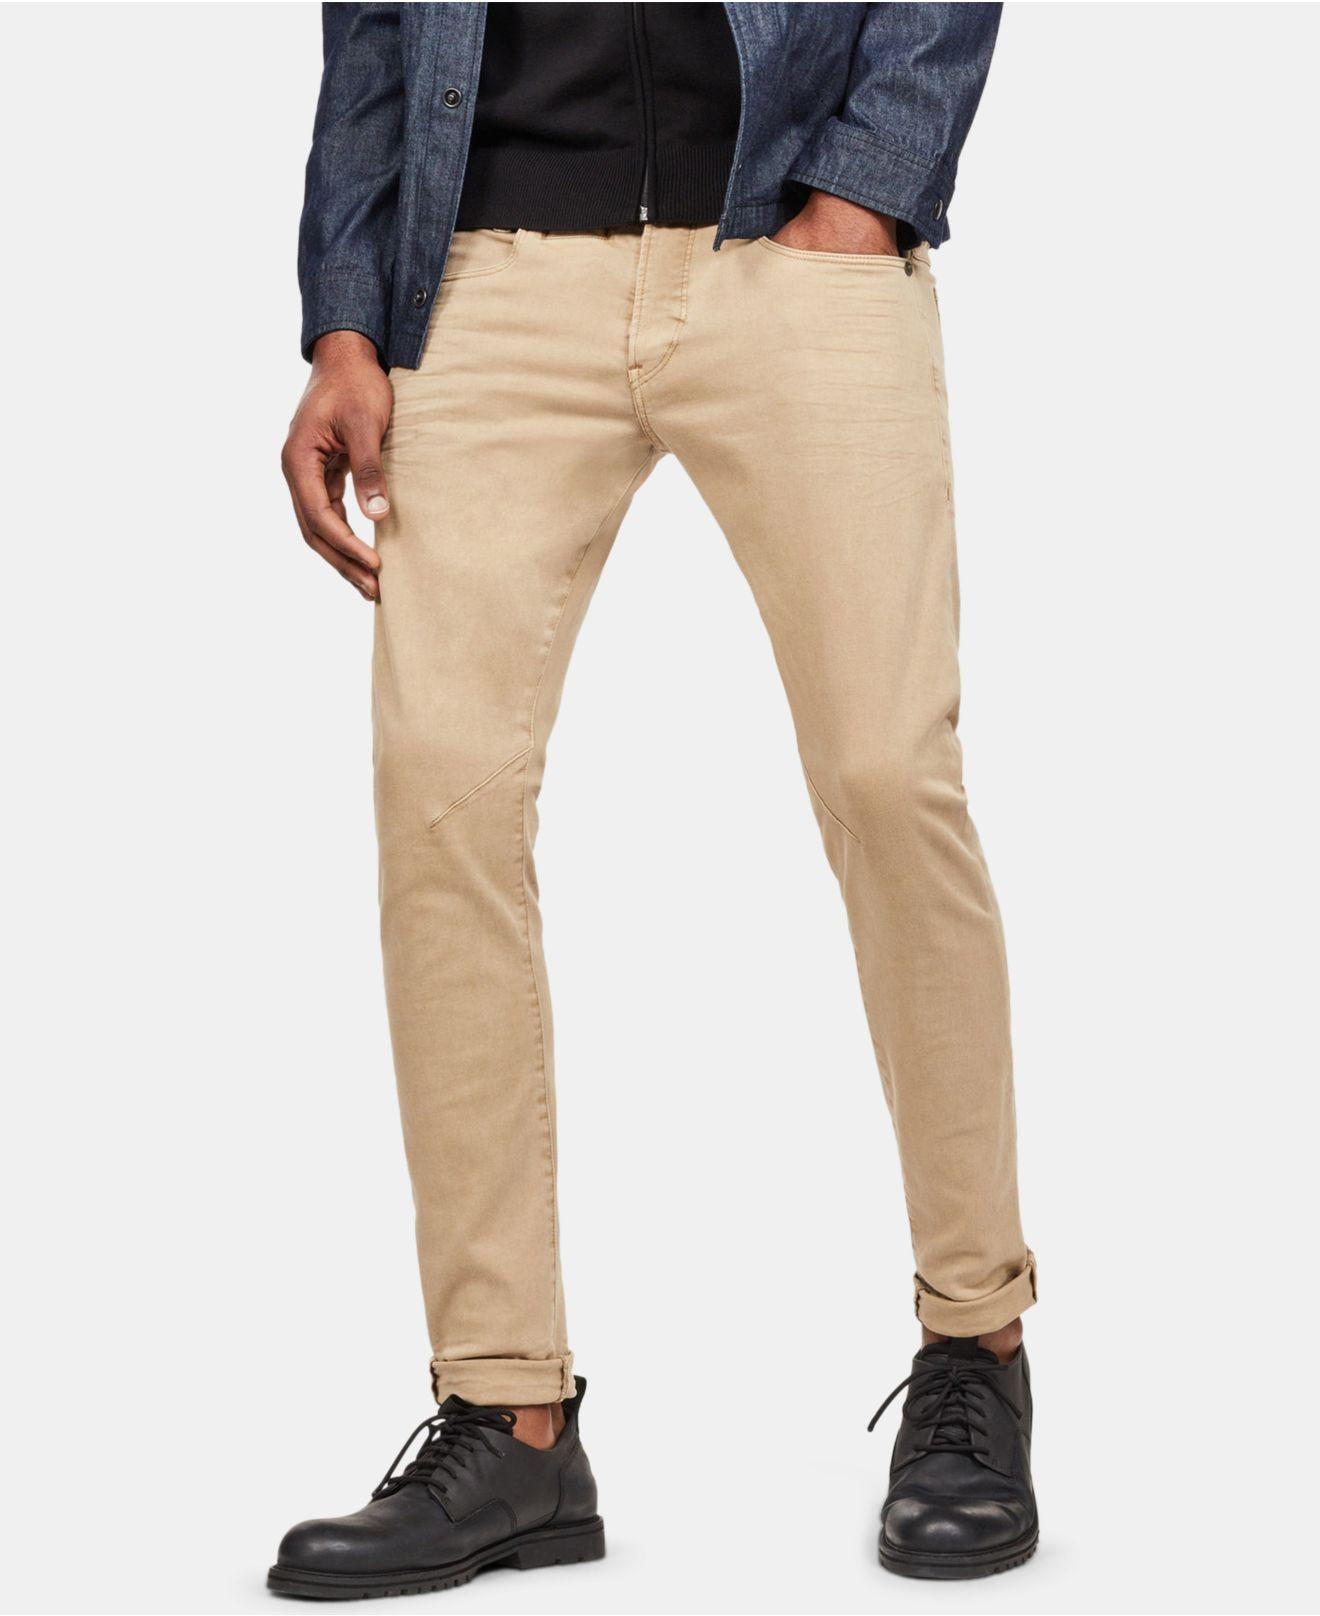 a5734a603c8 Lyst - G-Star RAW D-staq Skinny-fit Stretch Jeans in Natural for Men